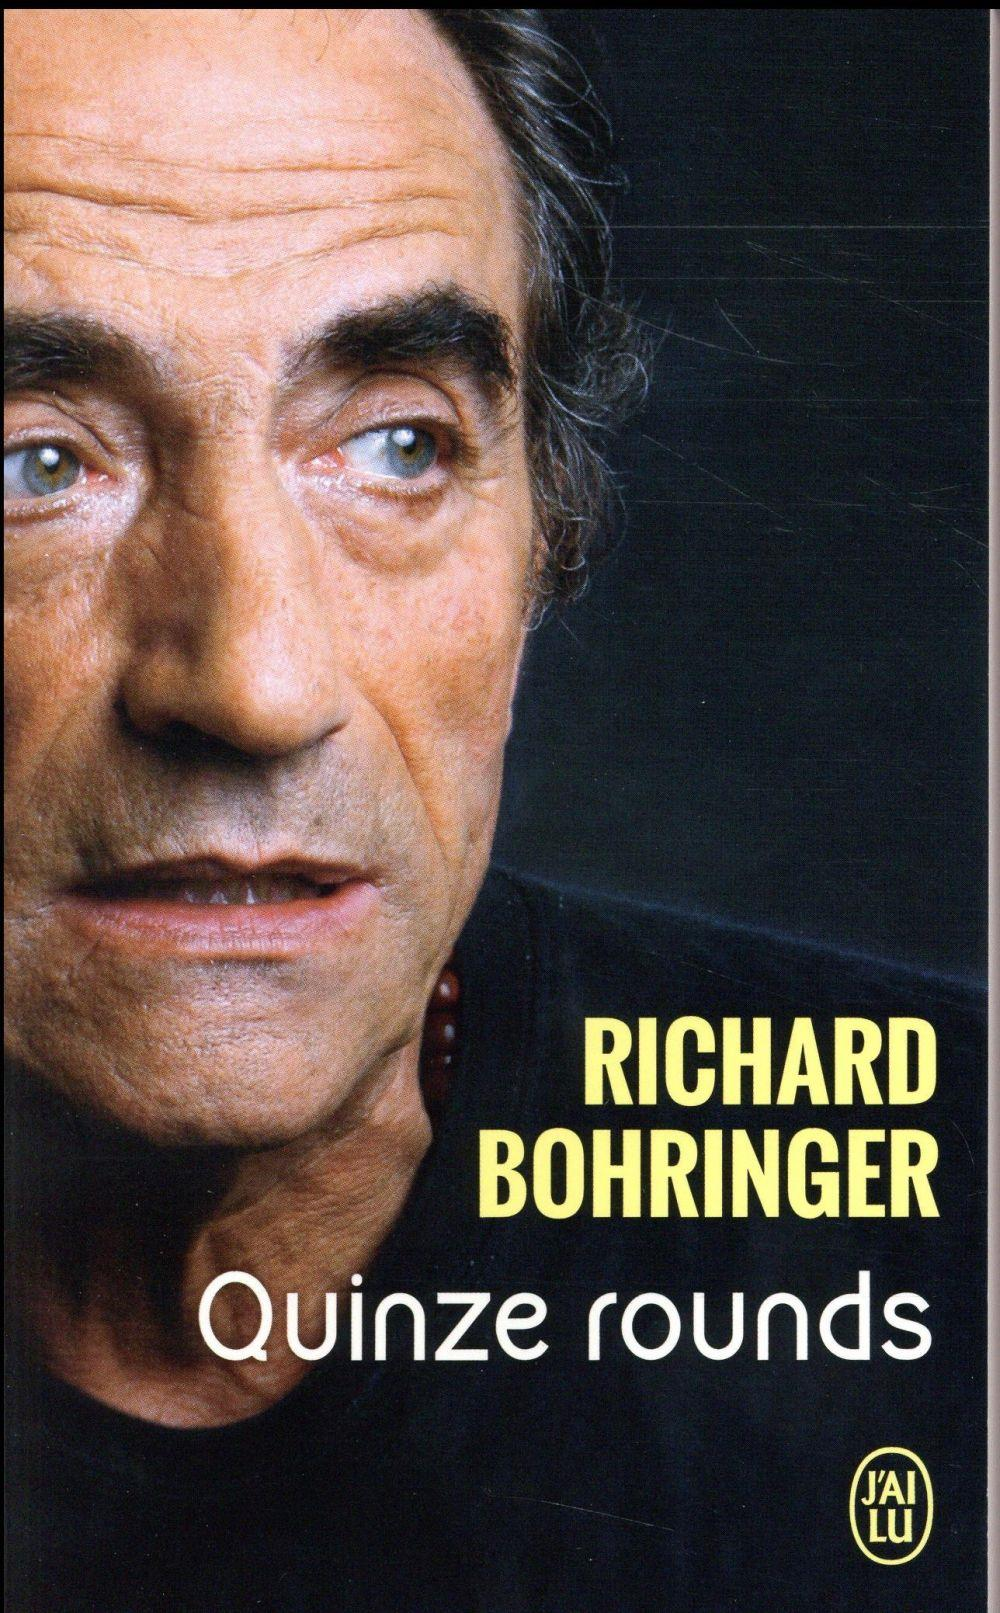 Vente Livre :                                    Quinze rounds                                      - Richard Bohringer